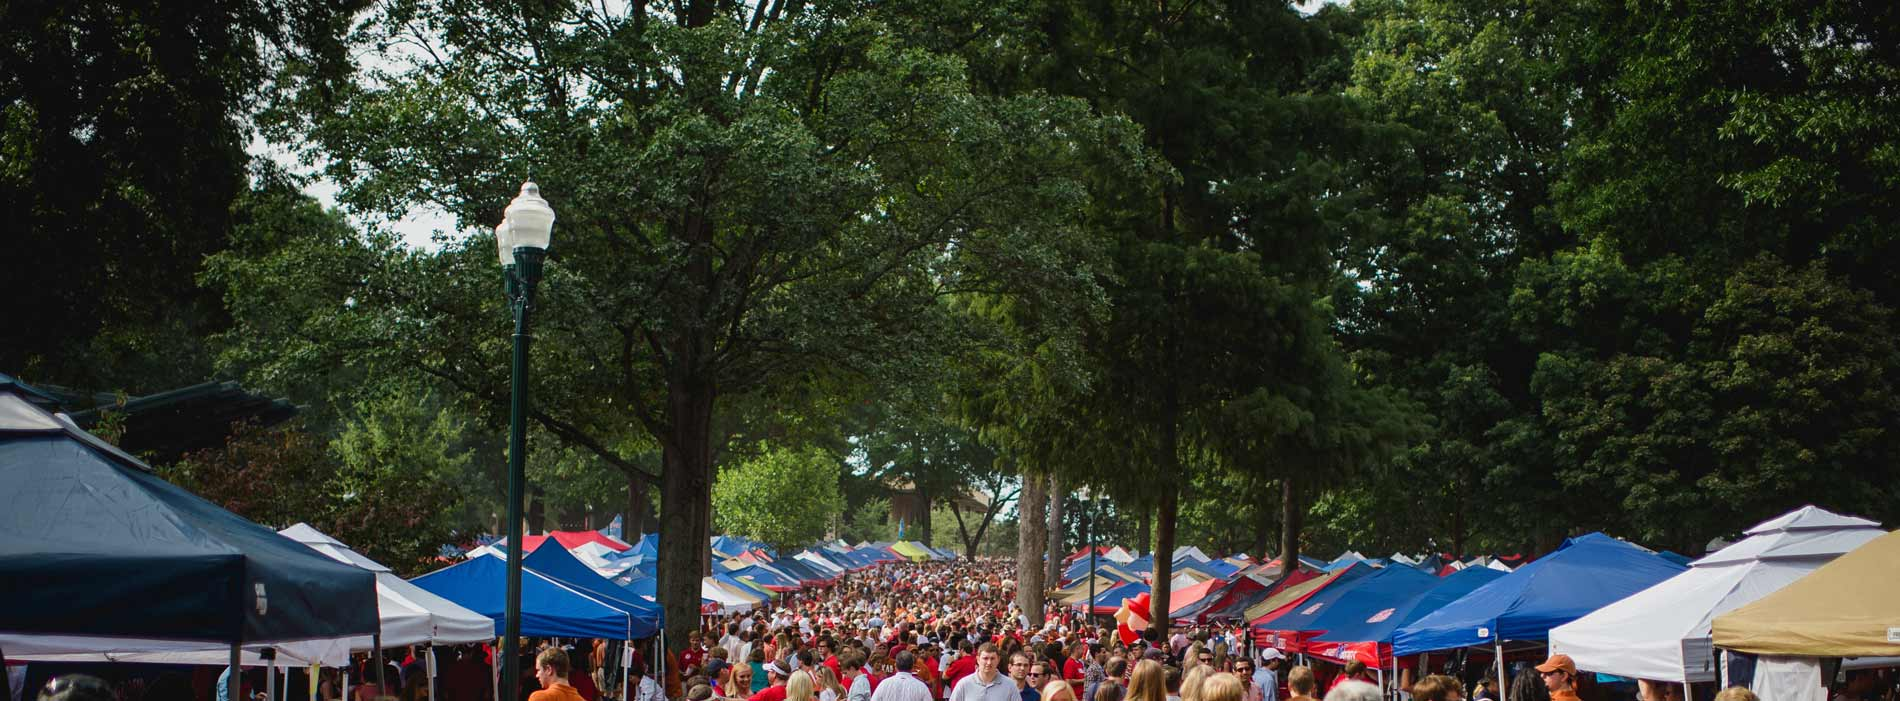 ole-miss-grove-tent-tailgating-services-company